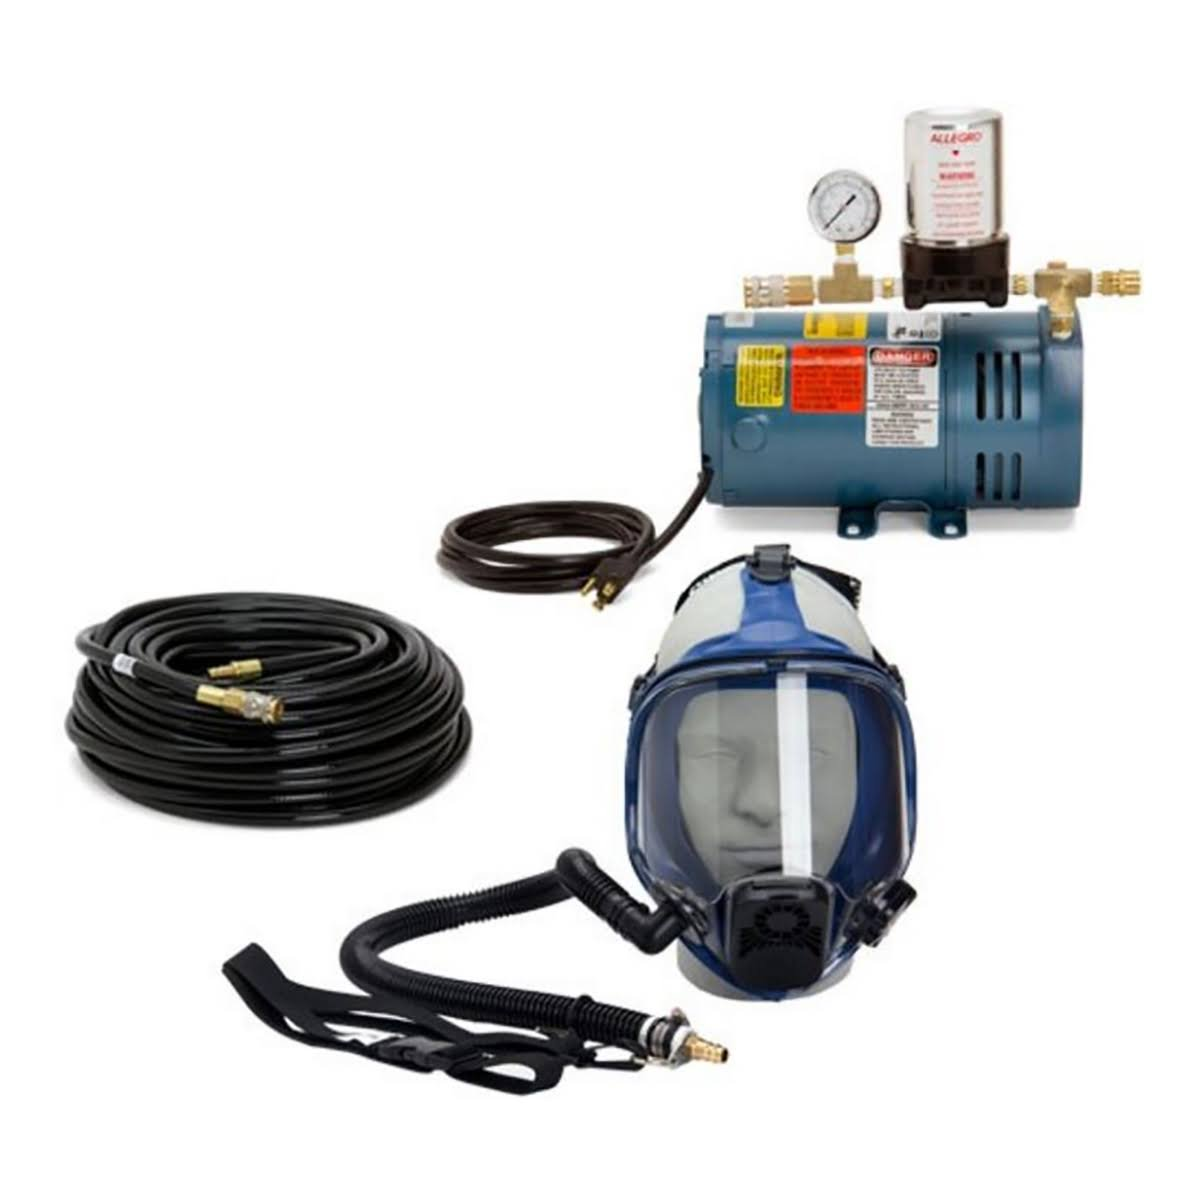 Allegro Double Worker Fresh Air System, 200' Hose, 2 Face Masks, 2 Packs Tear-Offs 9210-02